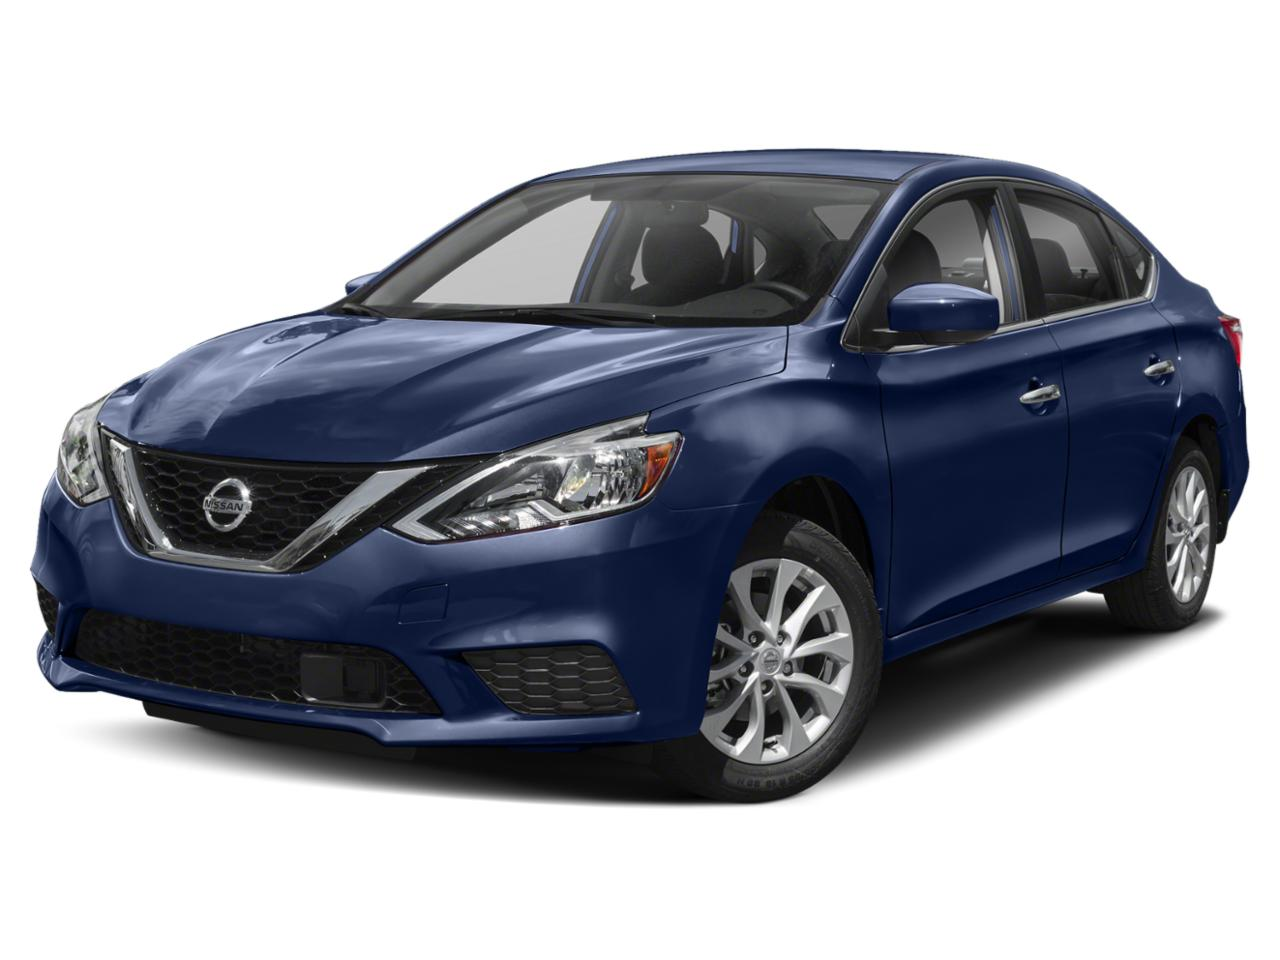 2019 Nissan Sentra Vehicle Photo in TEMPLE, TX 76504-3447